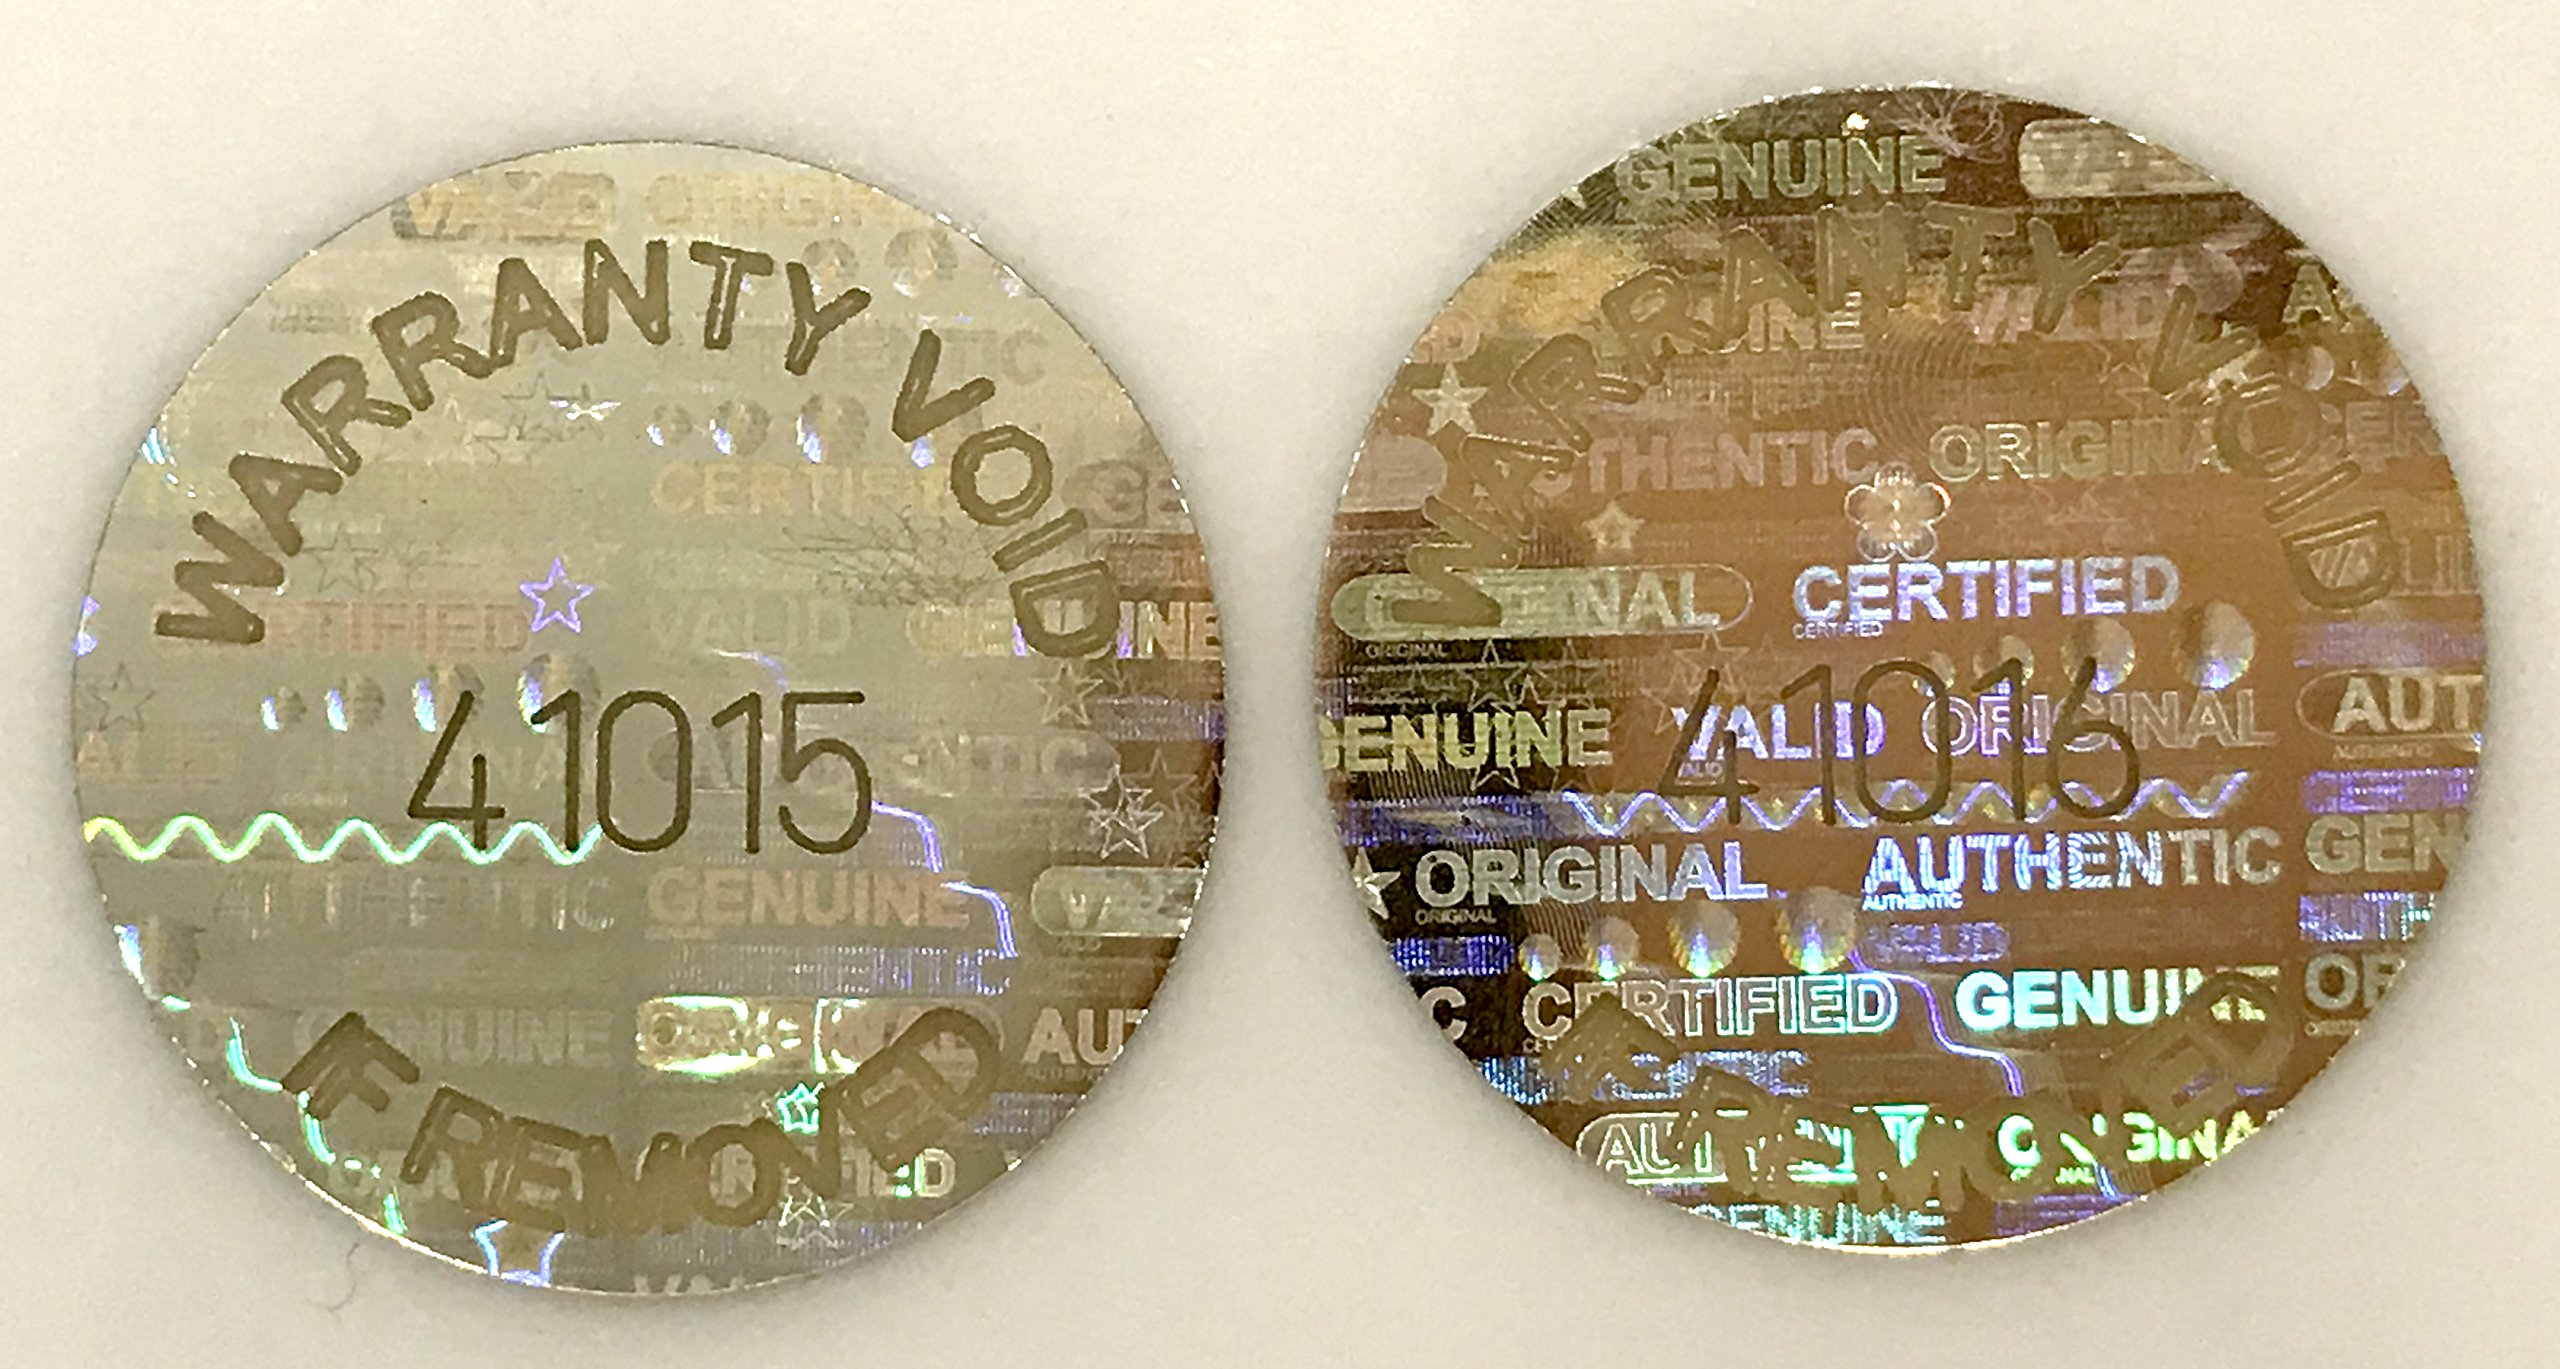 2,000 Gold Round Hologram Tamper Evident Security Labels/ Stickers Tinted Covert Laser Serialized: Unique - Size: 0.625'' Diameter (16mm) by intertronix